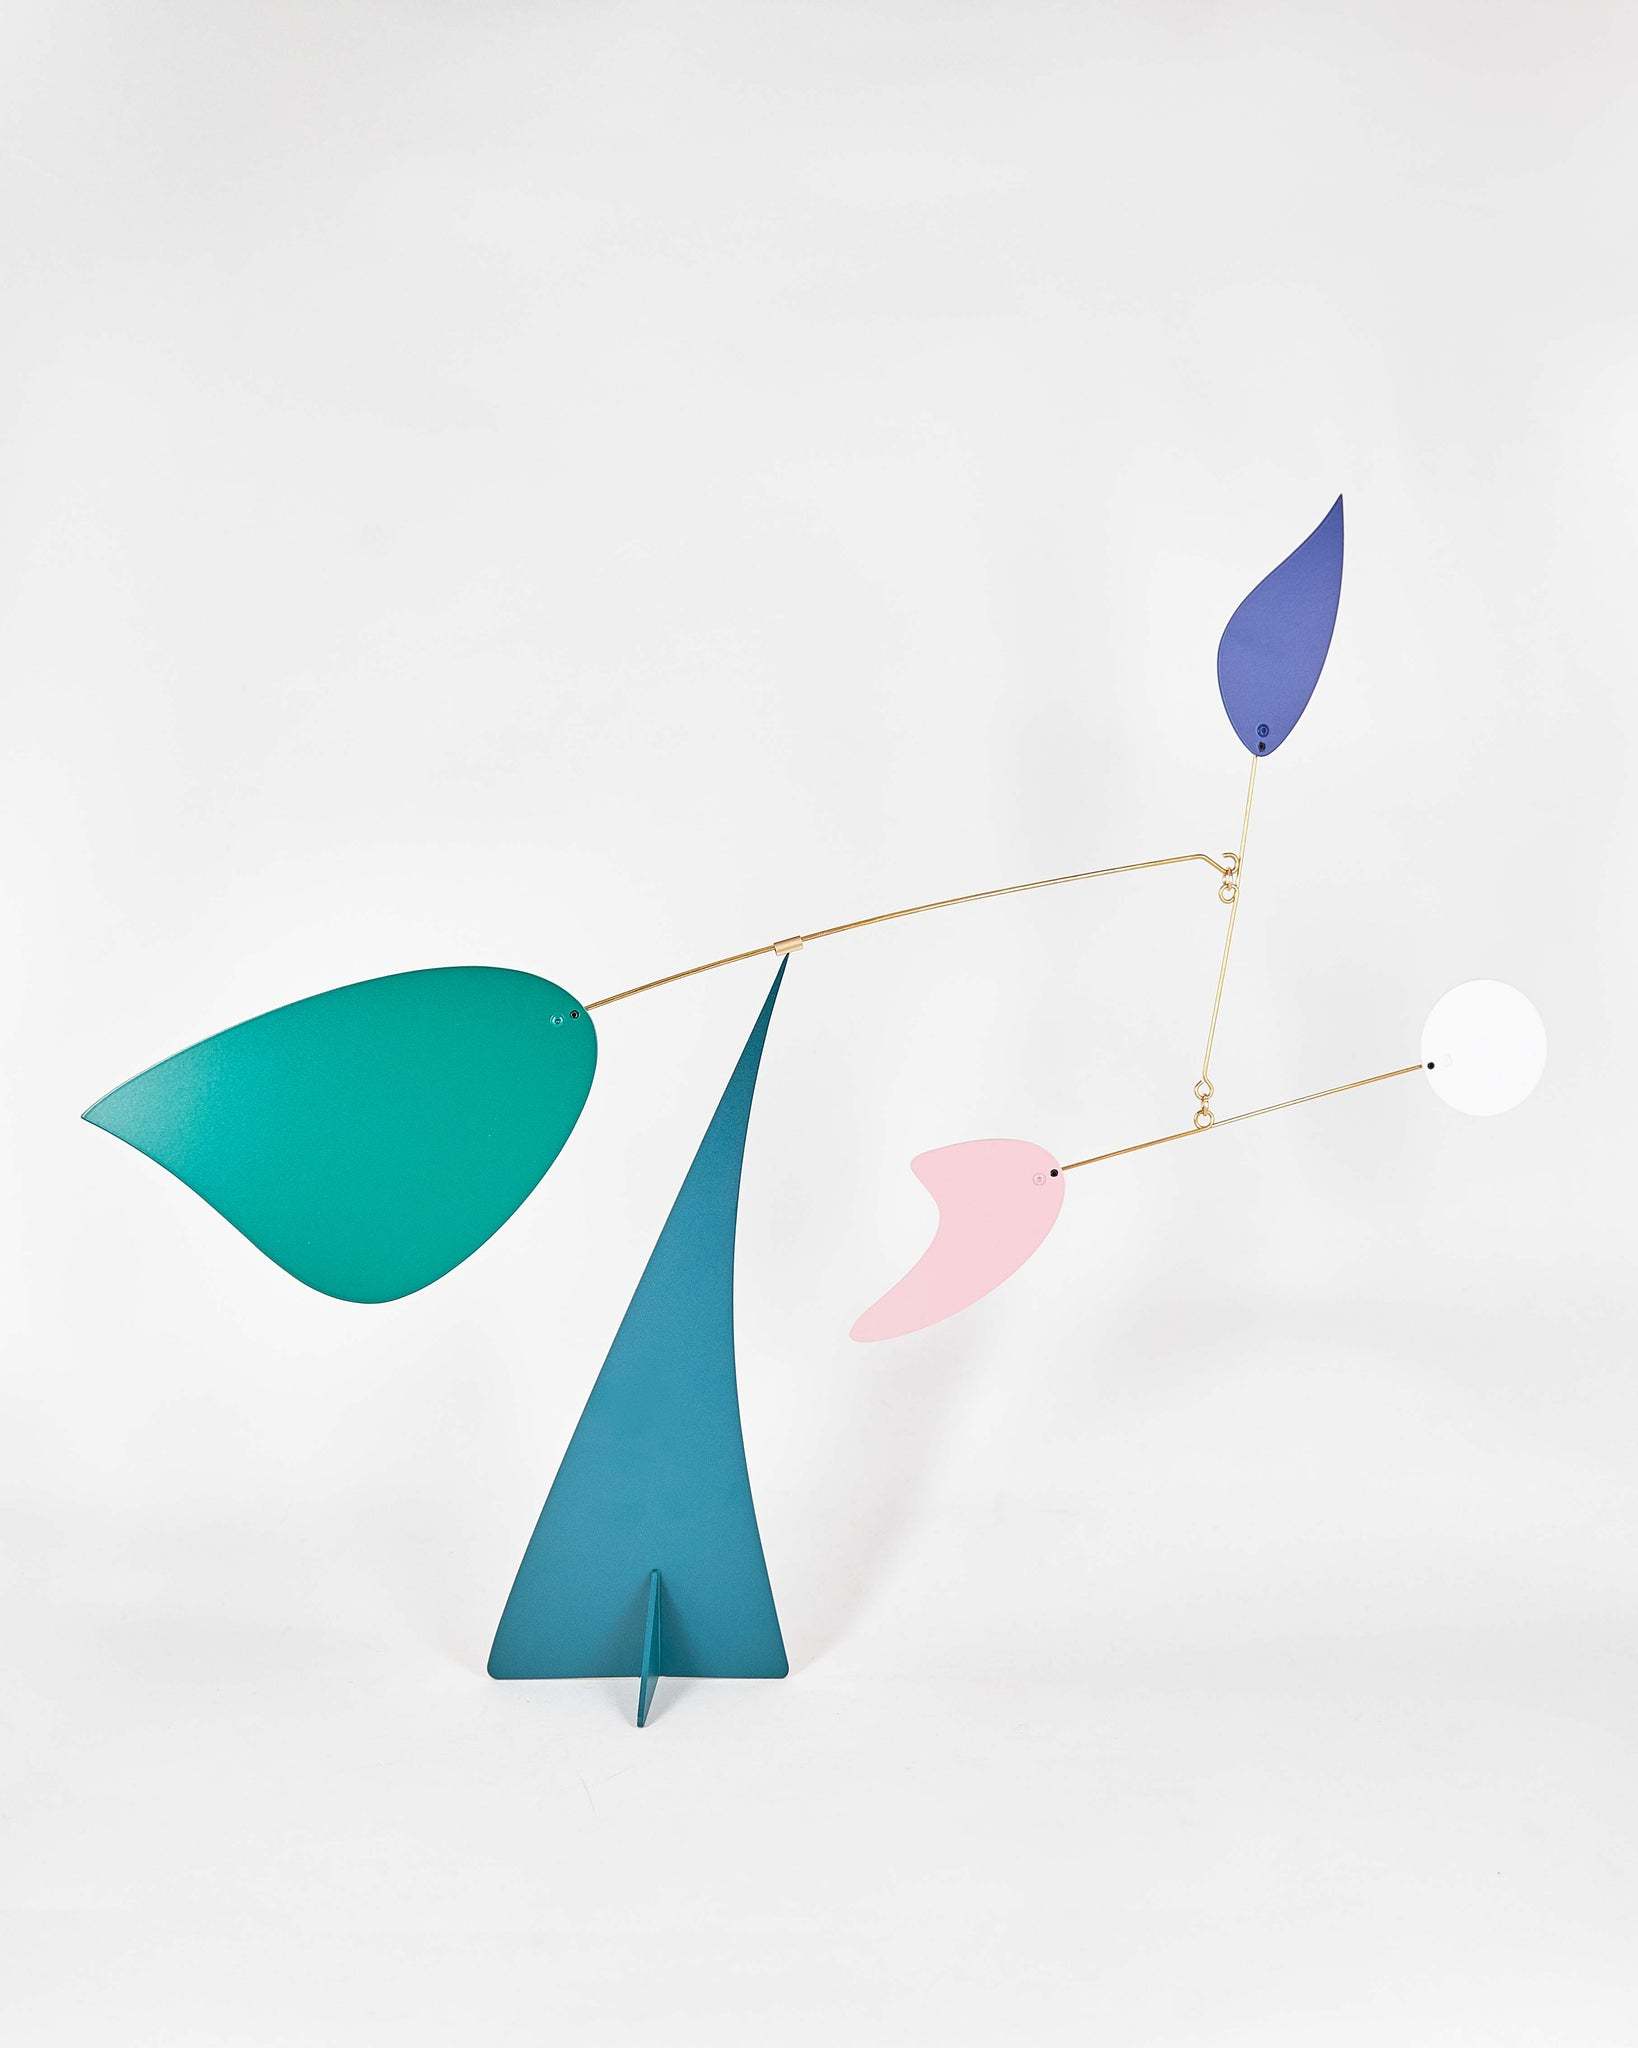 Mobile-Miami-Volta-Calder-Metal-Blue-Pink-Green-White-Handmade-Nuovum-Barcelona-localdesigners-Front